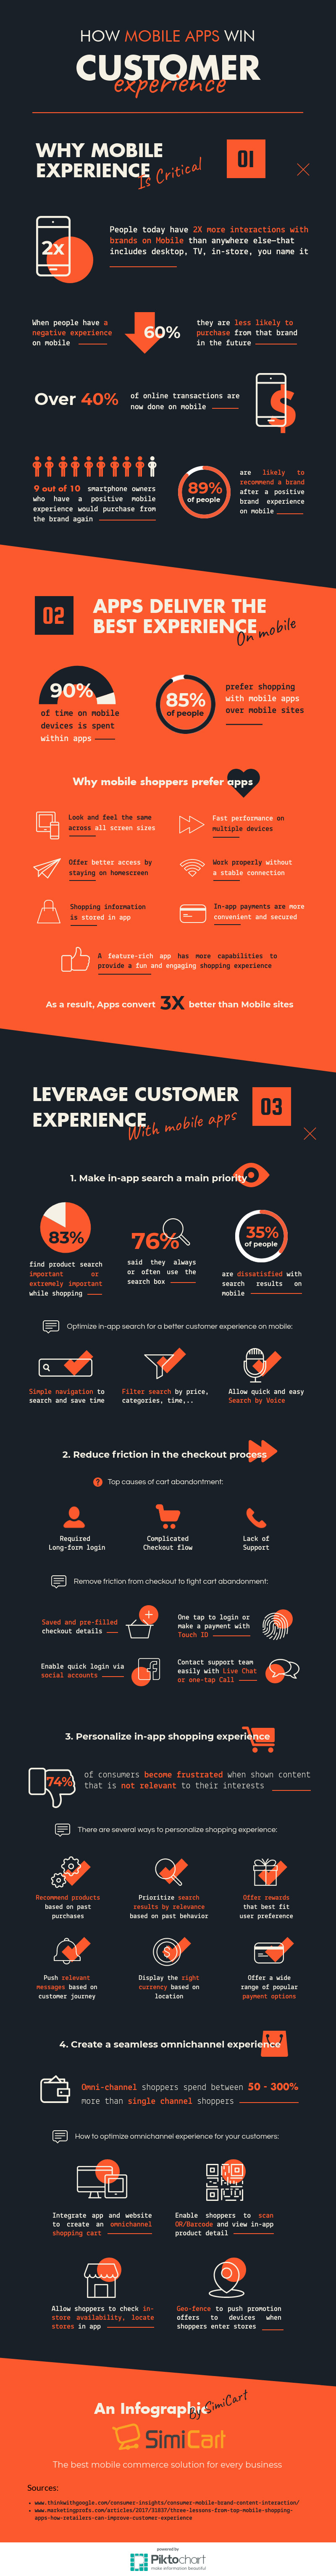 How mobile apps win customer experience